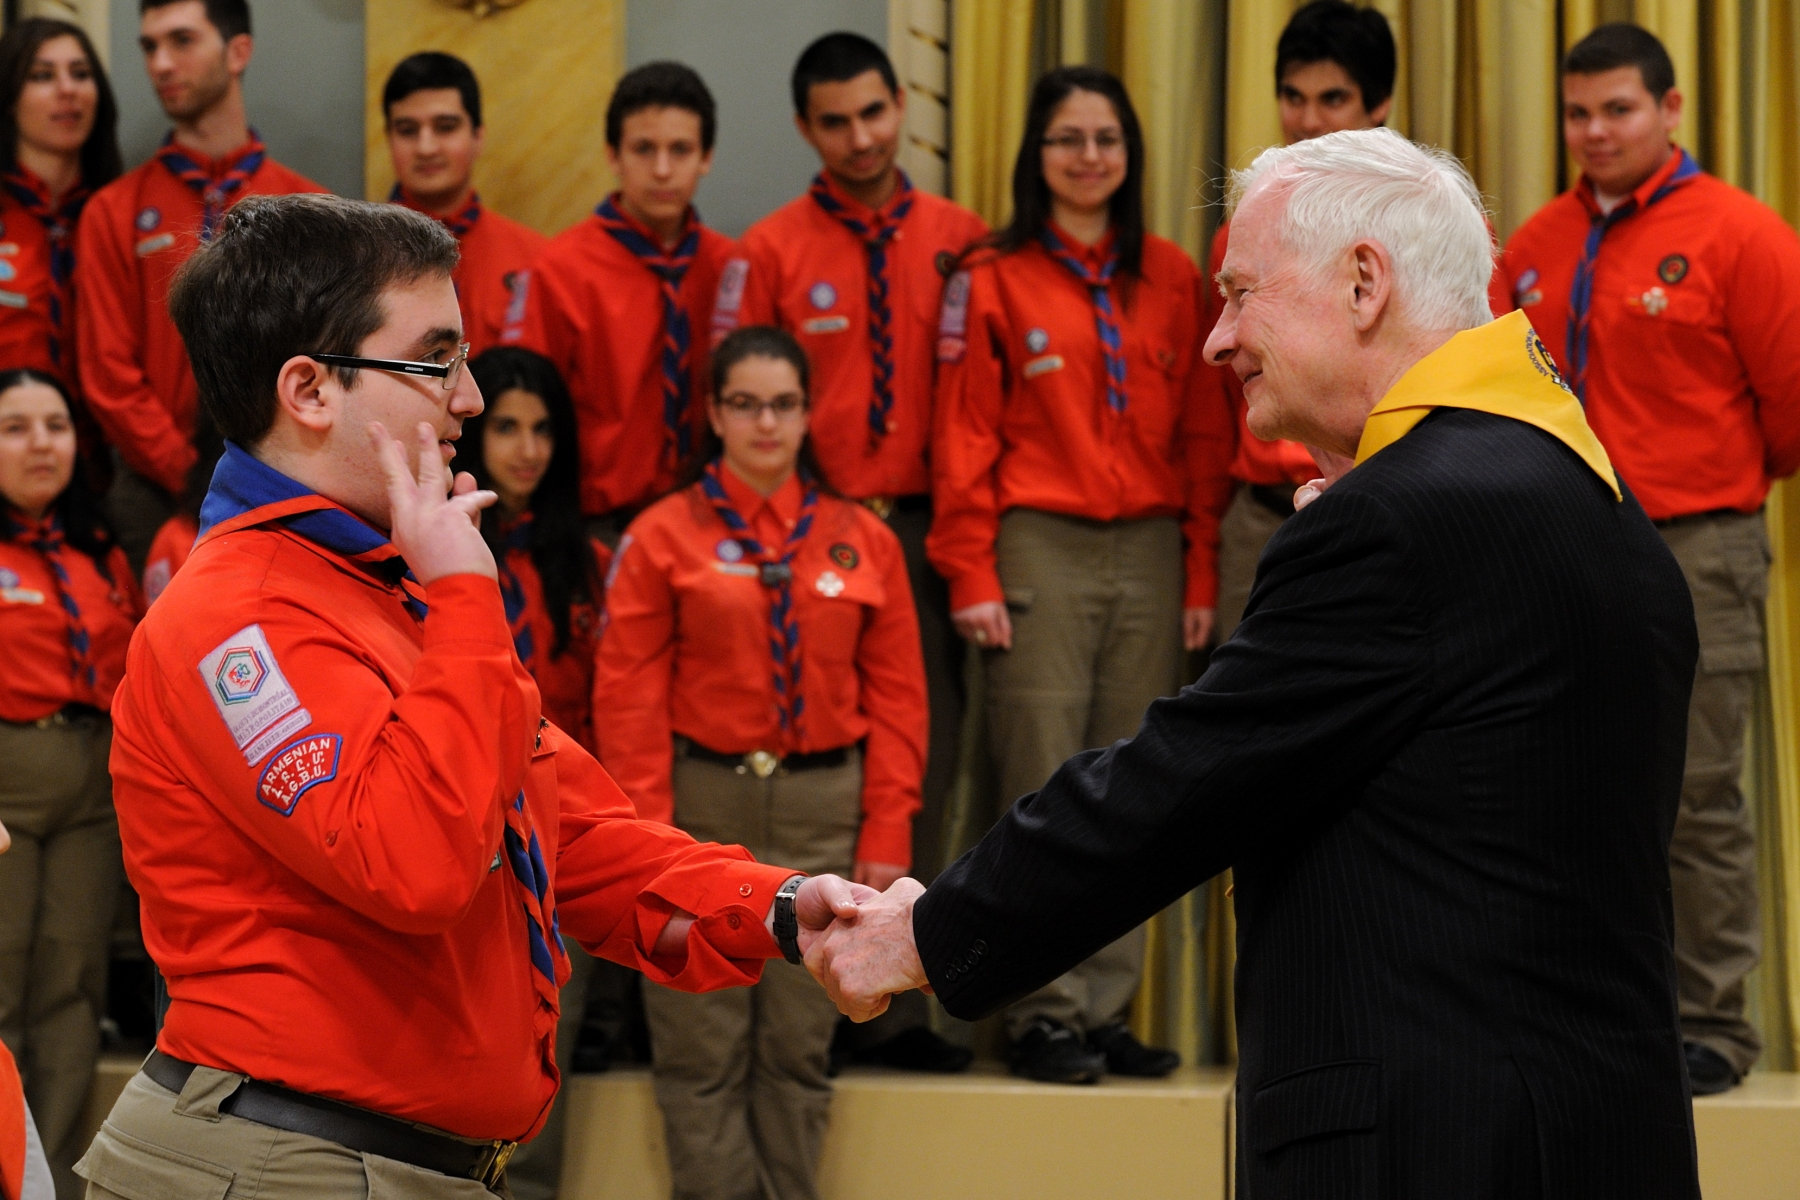 Mathew Shant Armutlu with the U.G.A.B. Troop received the badge Annapurna. The badge Annapurna is a national decoration of the Association des scouts du Canada, awarded to young pioneers for exceptional achievement. This distinction calls on scouts to challenge and surpass themselves. The badge is inspired by a team of French climbers, lead by Maurice Herzog, who in 1950, conquered the summit of Mount Annapurna , located more than 8000 meters in altitude in the Himalayas.